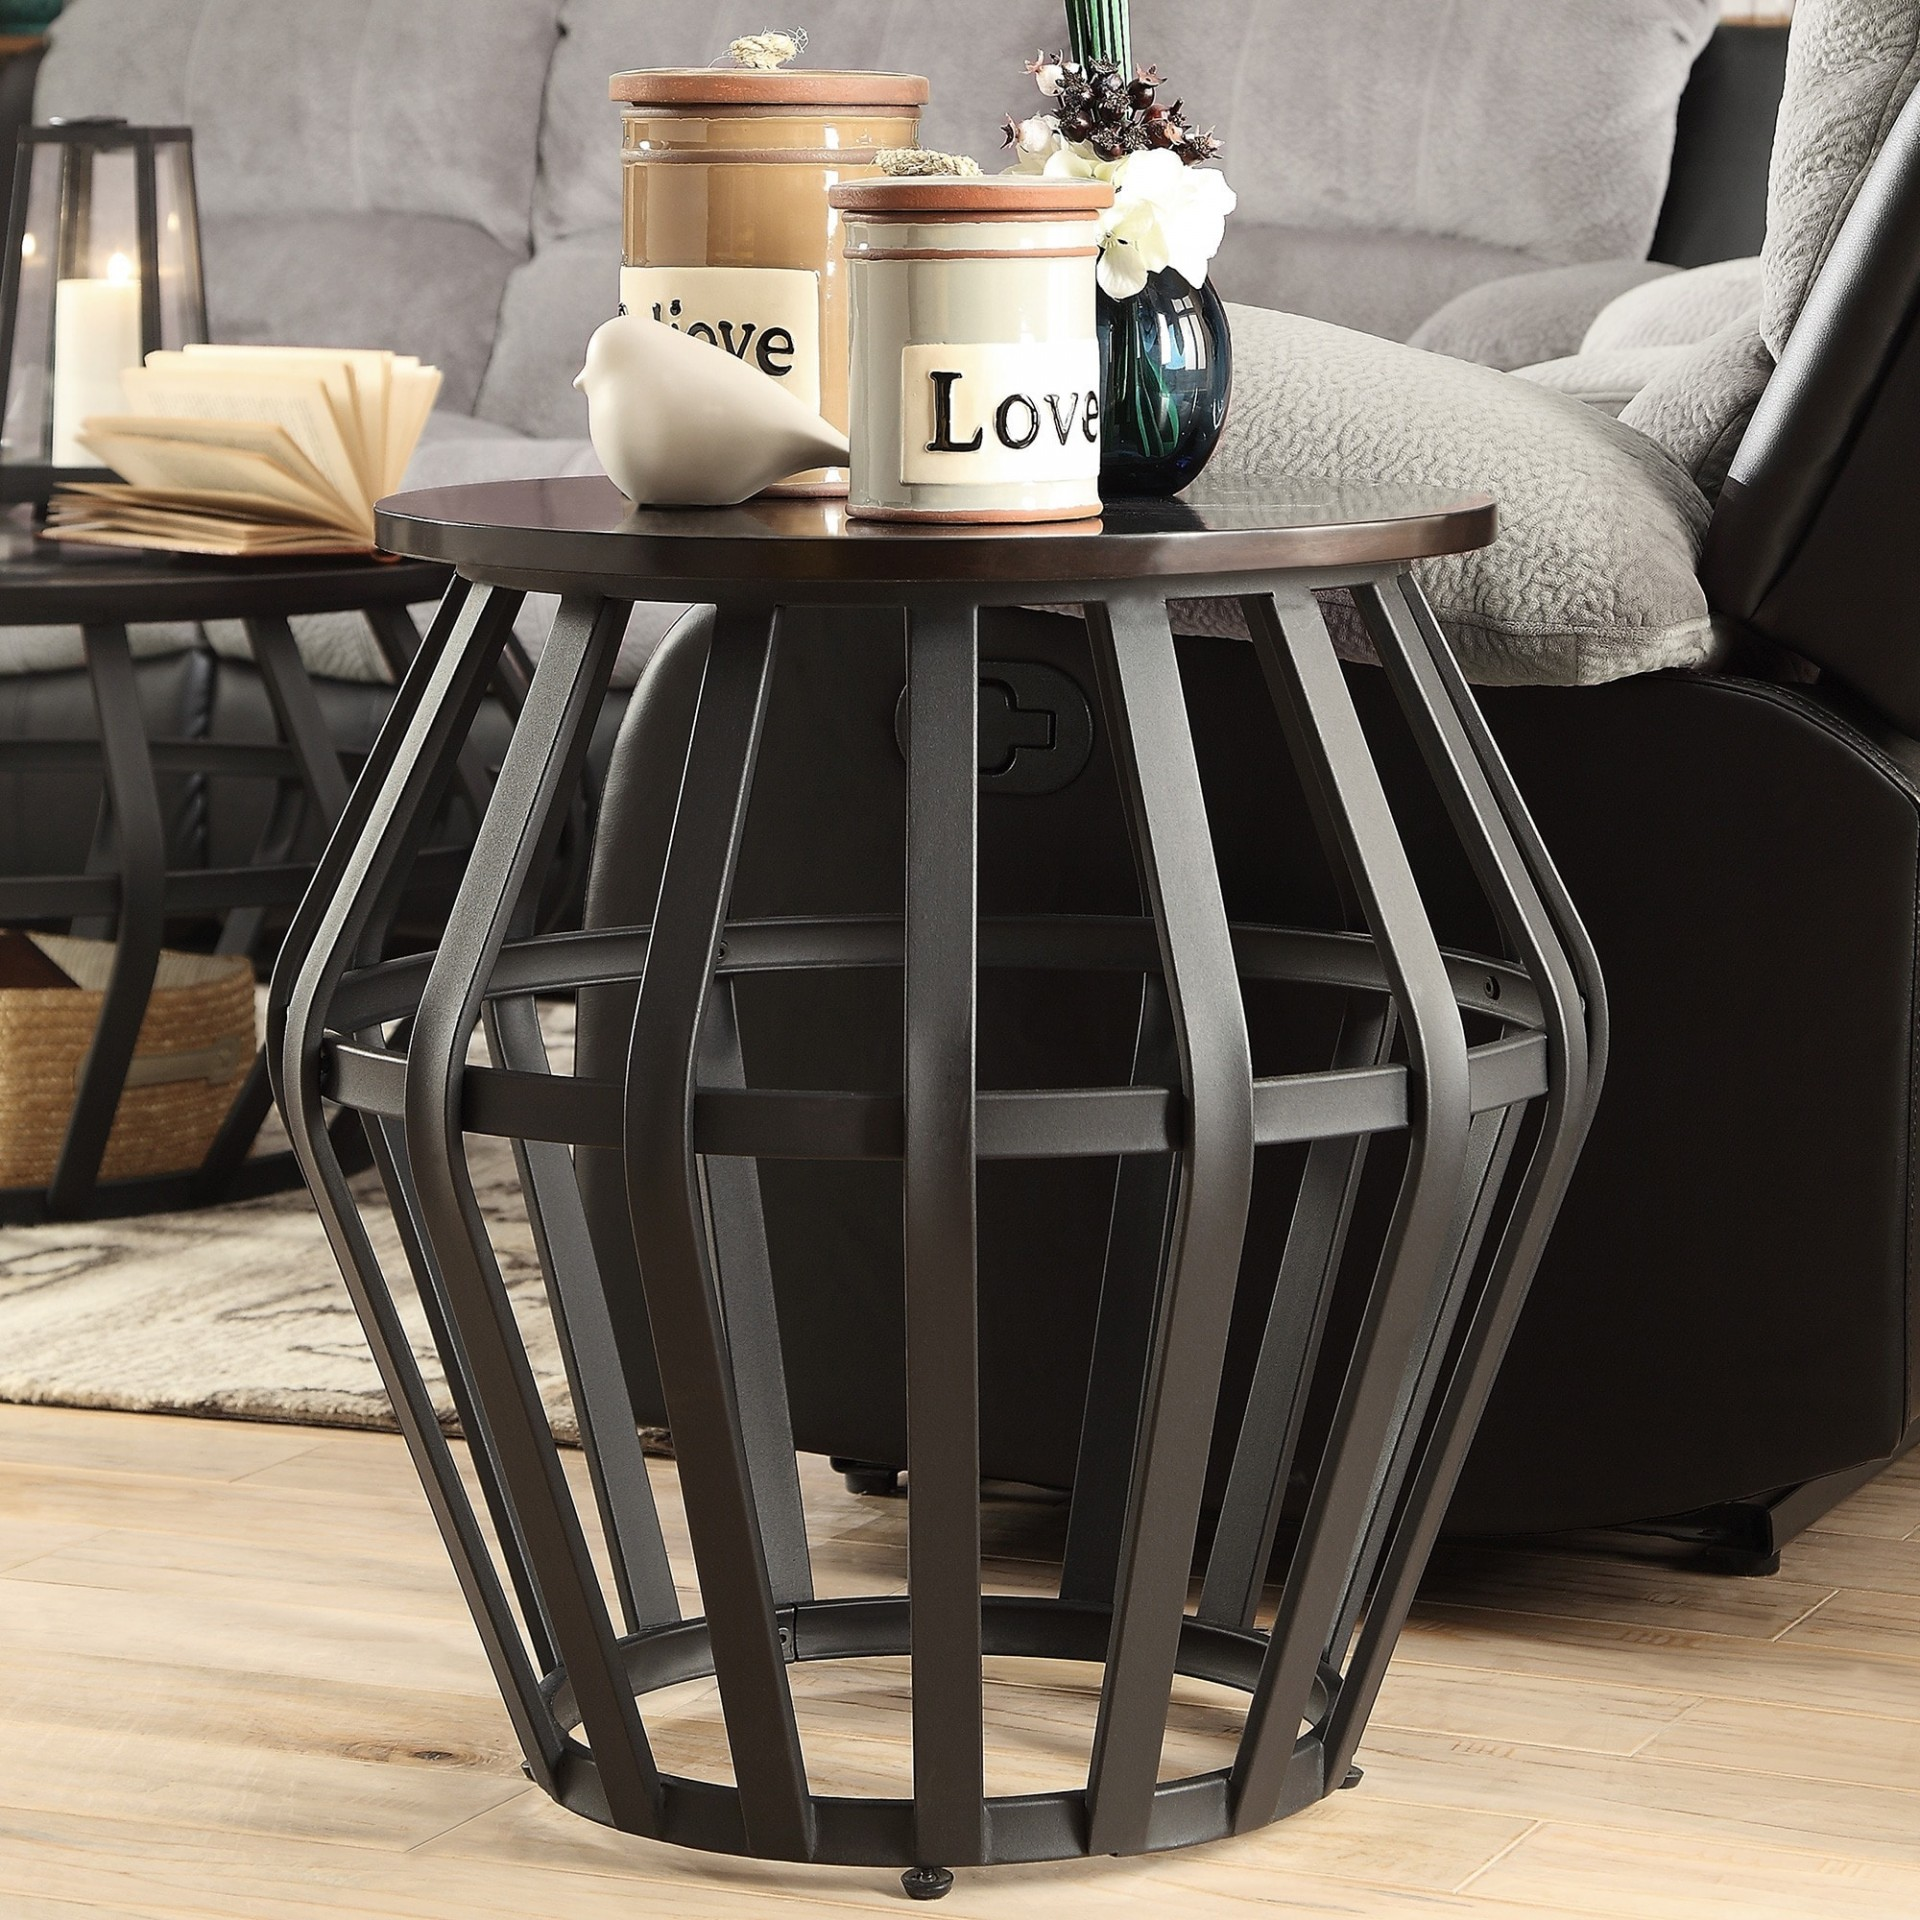 classy steel drum coffee table tables best devon metal frame round cage slate accent end inspire wood classic free stylish lamps with legs target patio side cloth decoration small